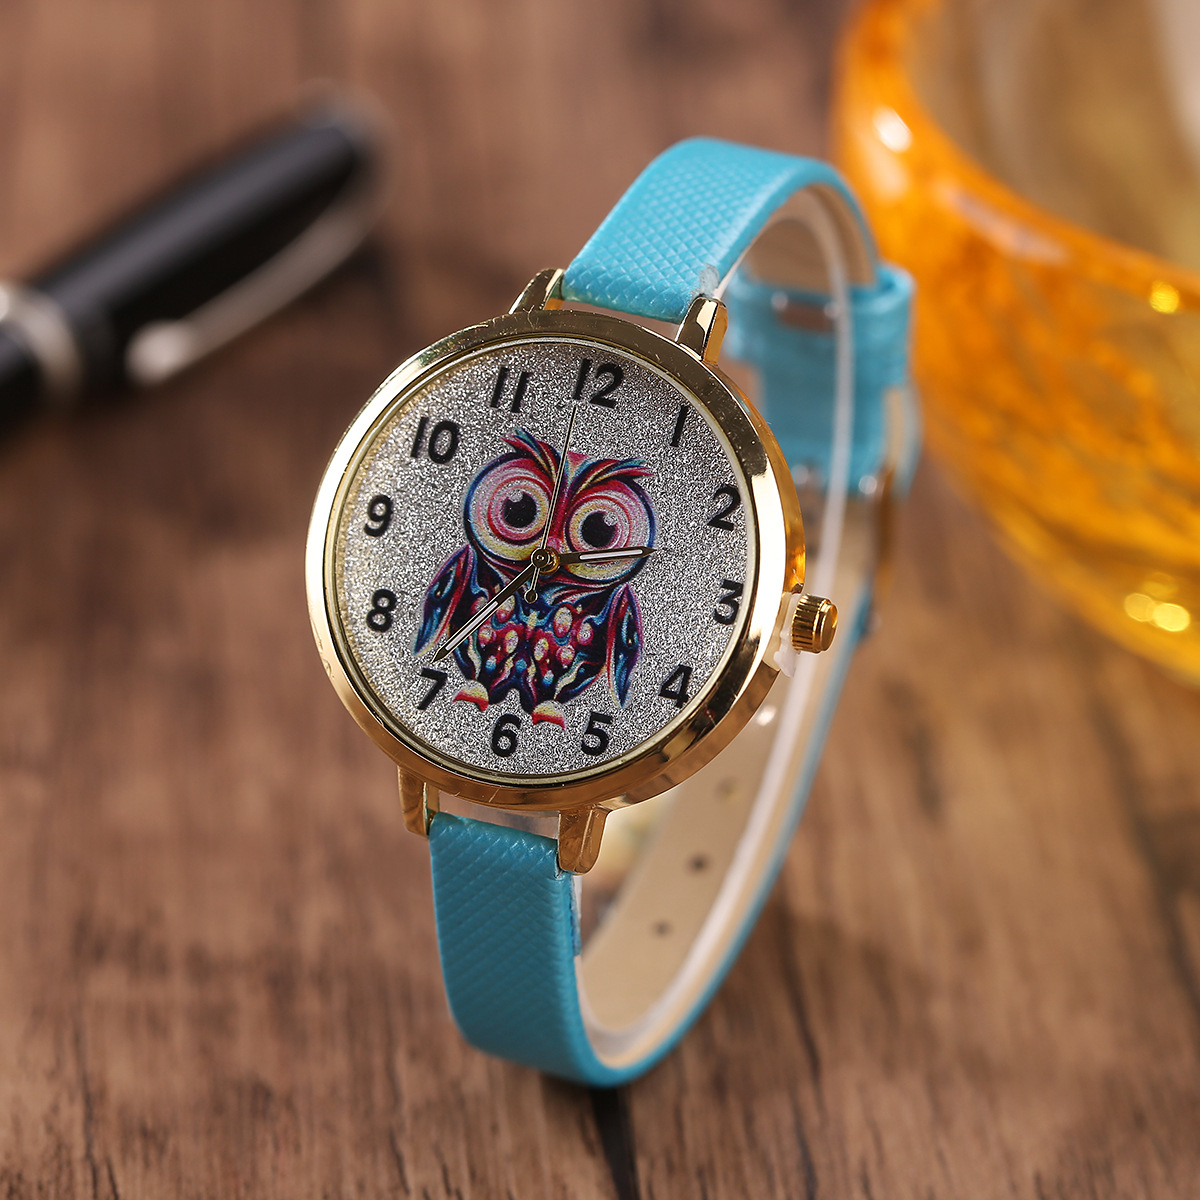 Luxury Women Quartz Watch Children Colorful Cartoon Owl Dial Ladies Leather Watch Women Relogio Feminino Clock стоимость